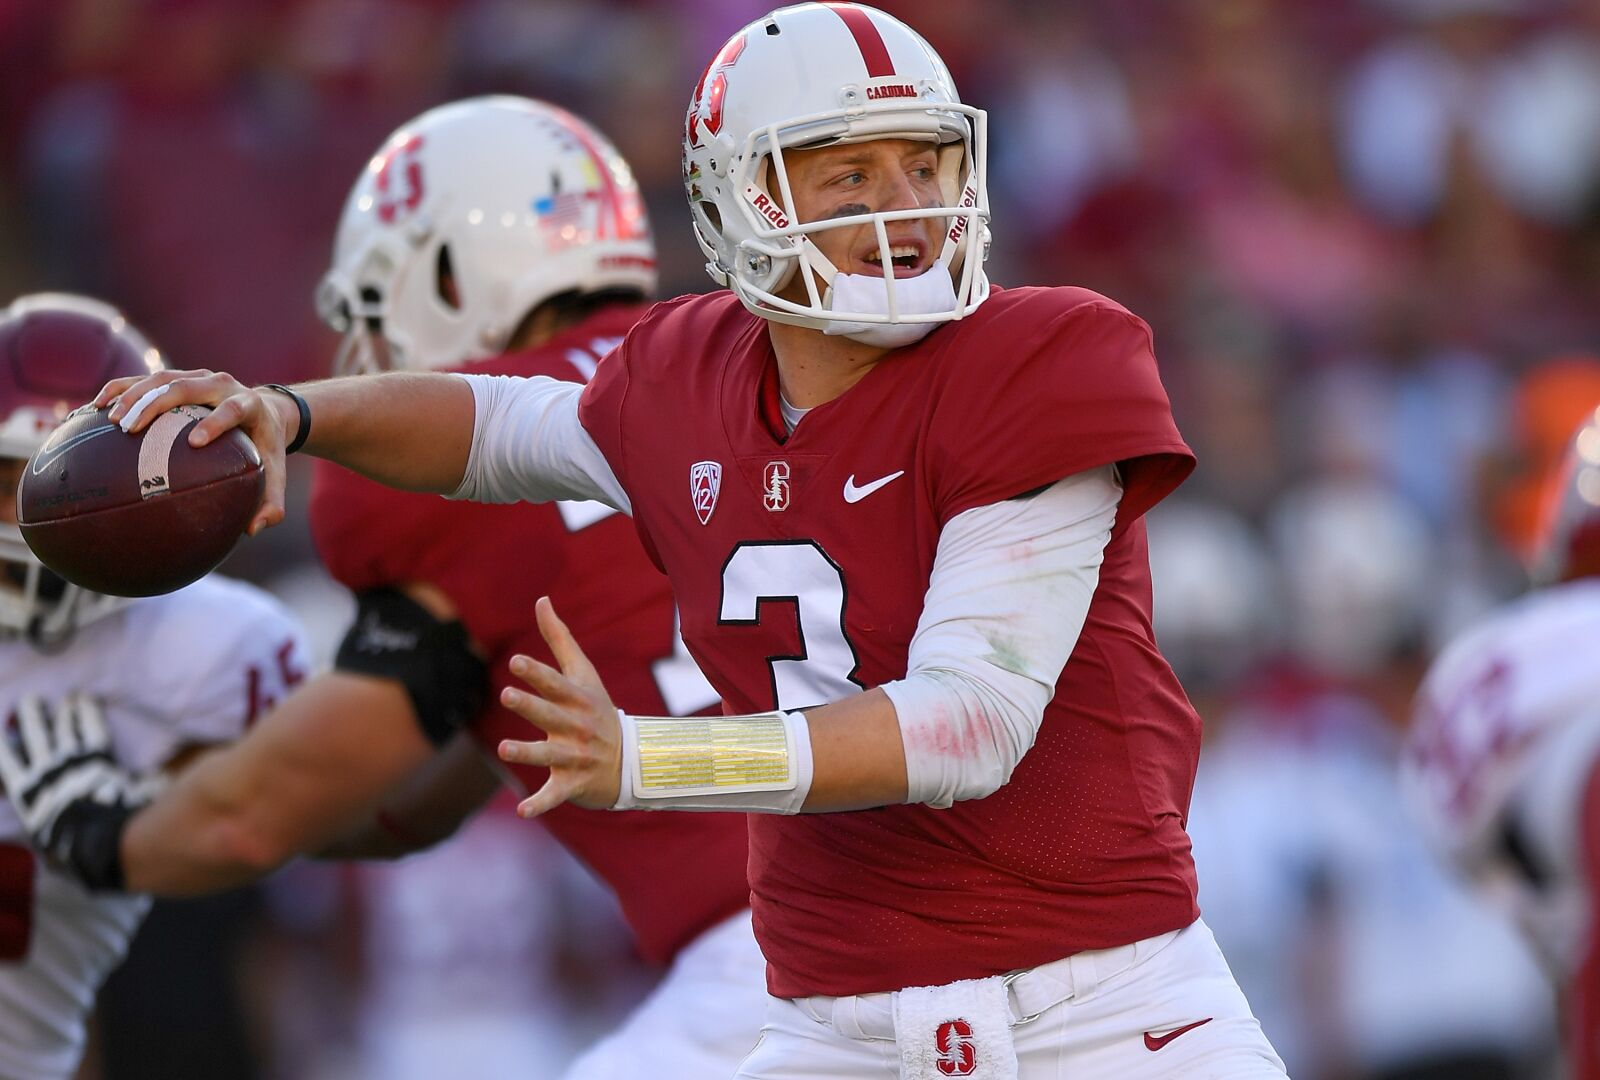 Stanford Football: K.J. Costello could be a legitimate Heisman candidate